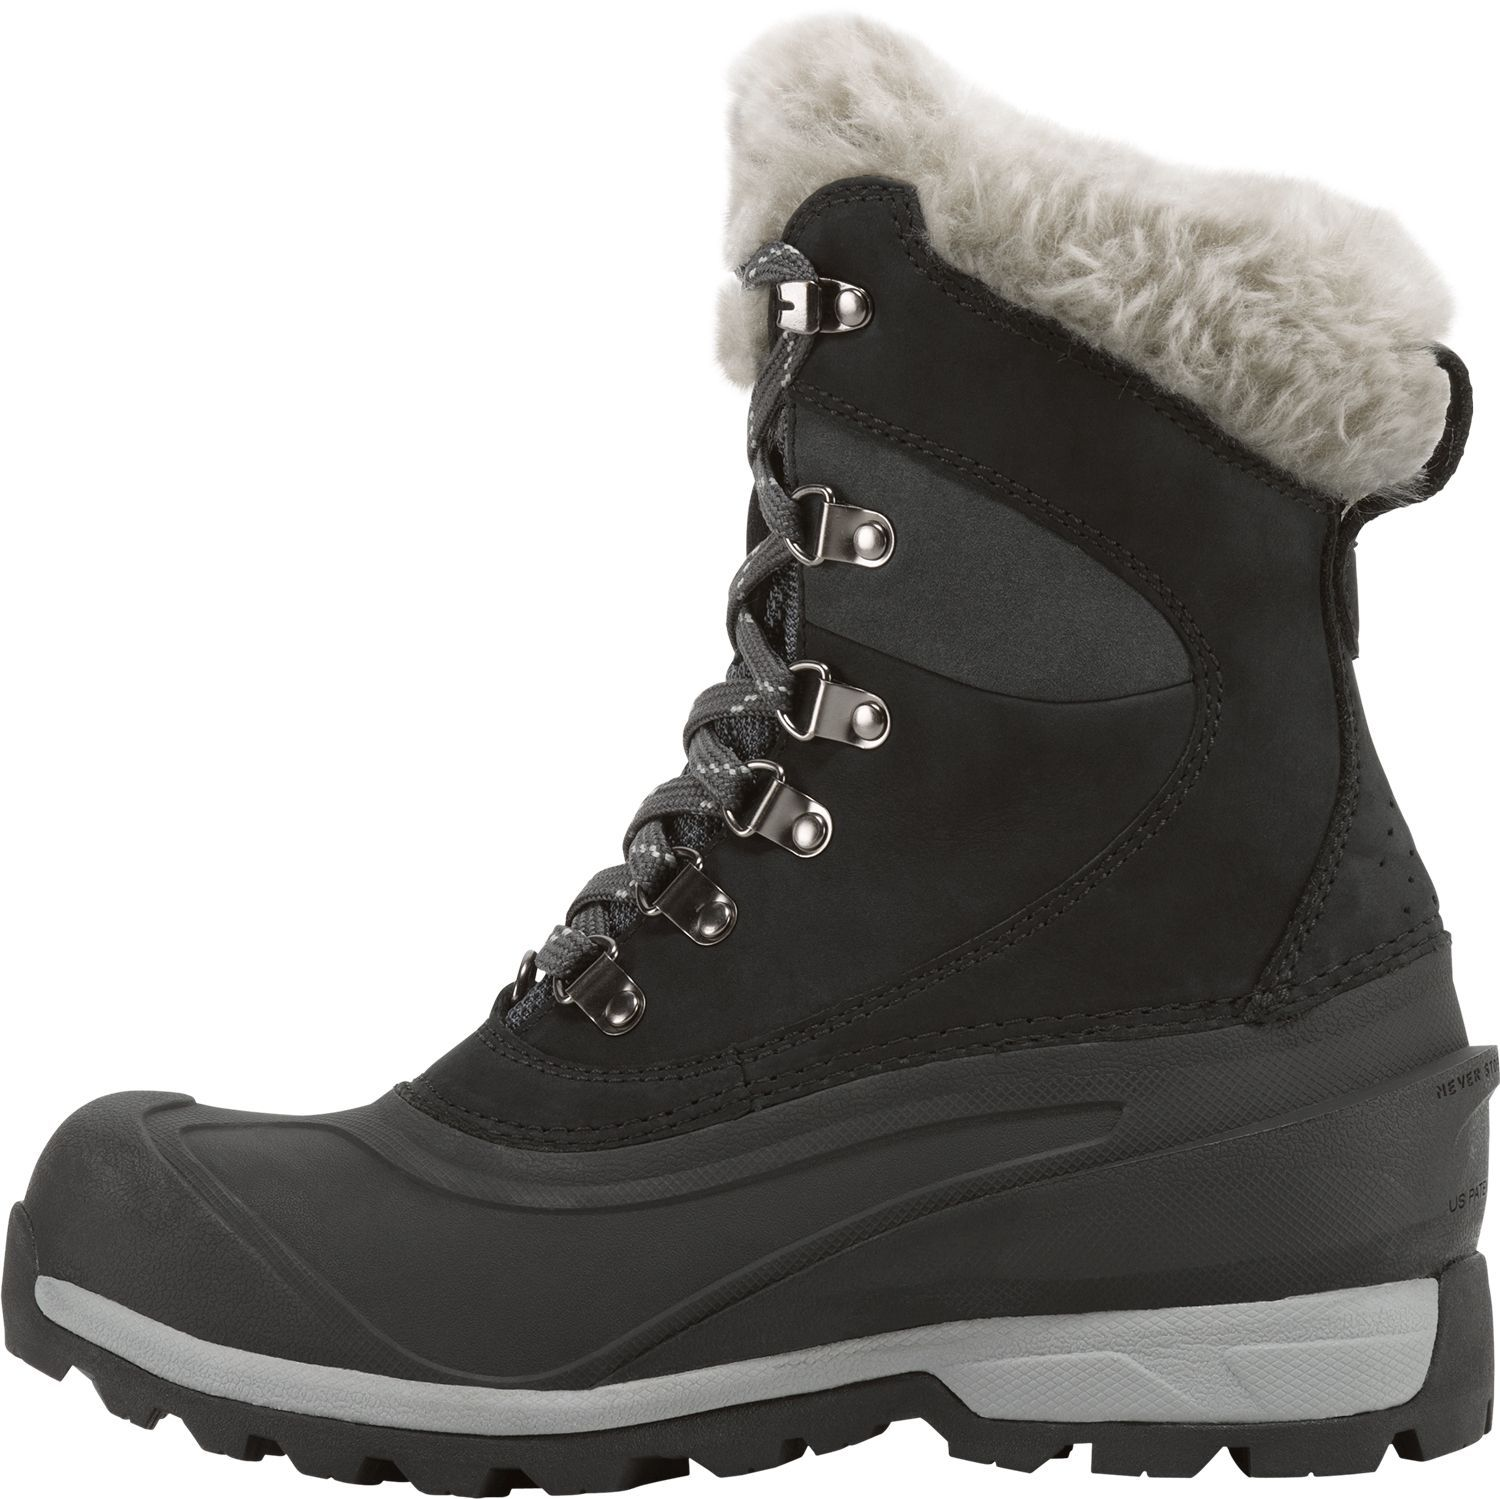 7759c2c1a The North Face Women's Chilkat 400g Waterproof Winter Boots ...